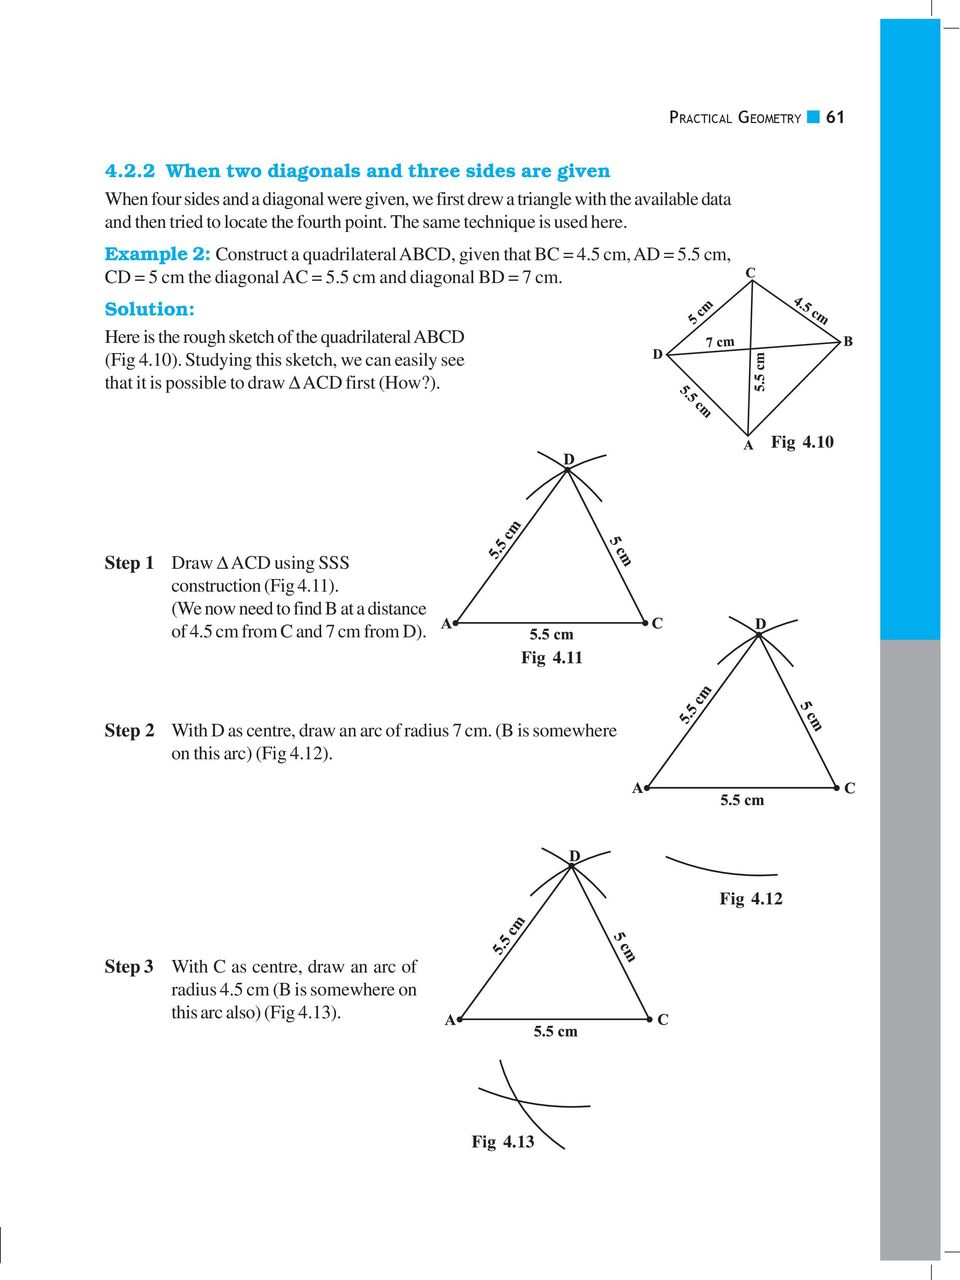 Practical geometry chapter 41 introduction do this pdf example 2 construct a quadrilateral abcd given ccuart Image collections